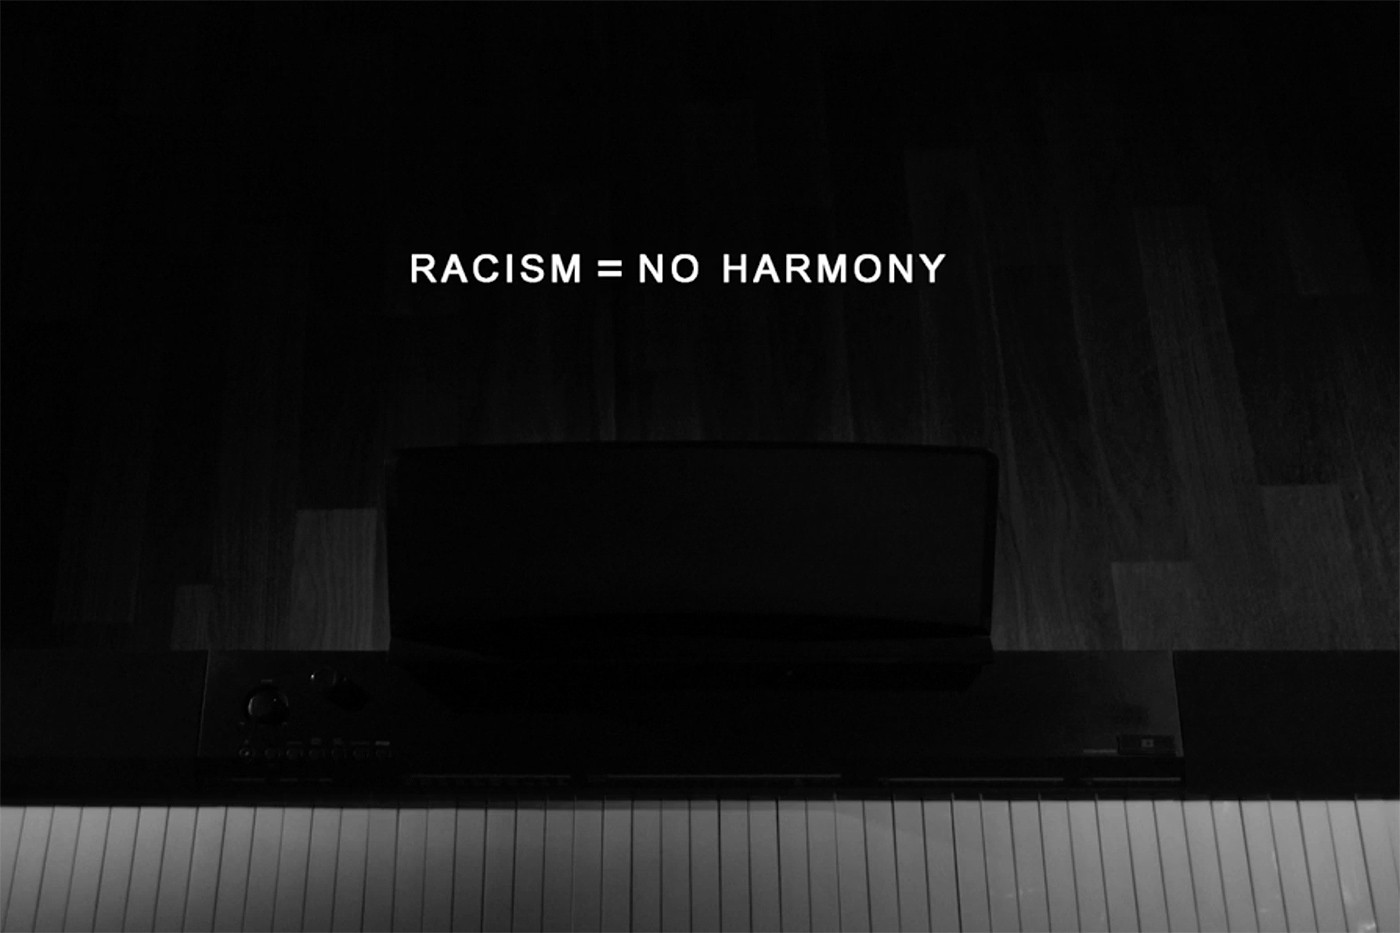 This Racist Cover Created on a Racist Keyboard Conveys a meaningful message against Racism